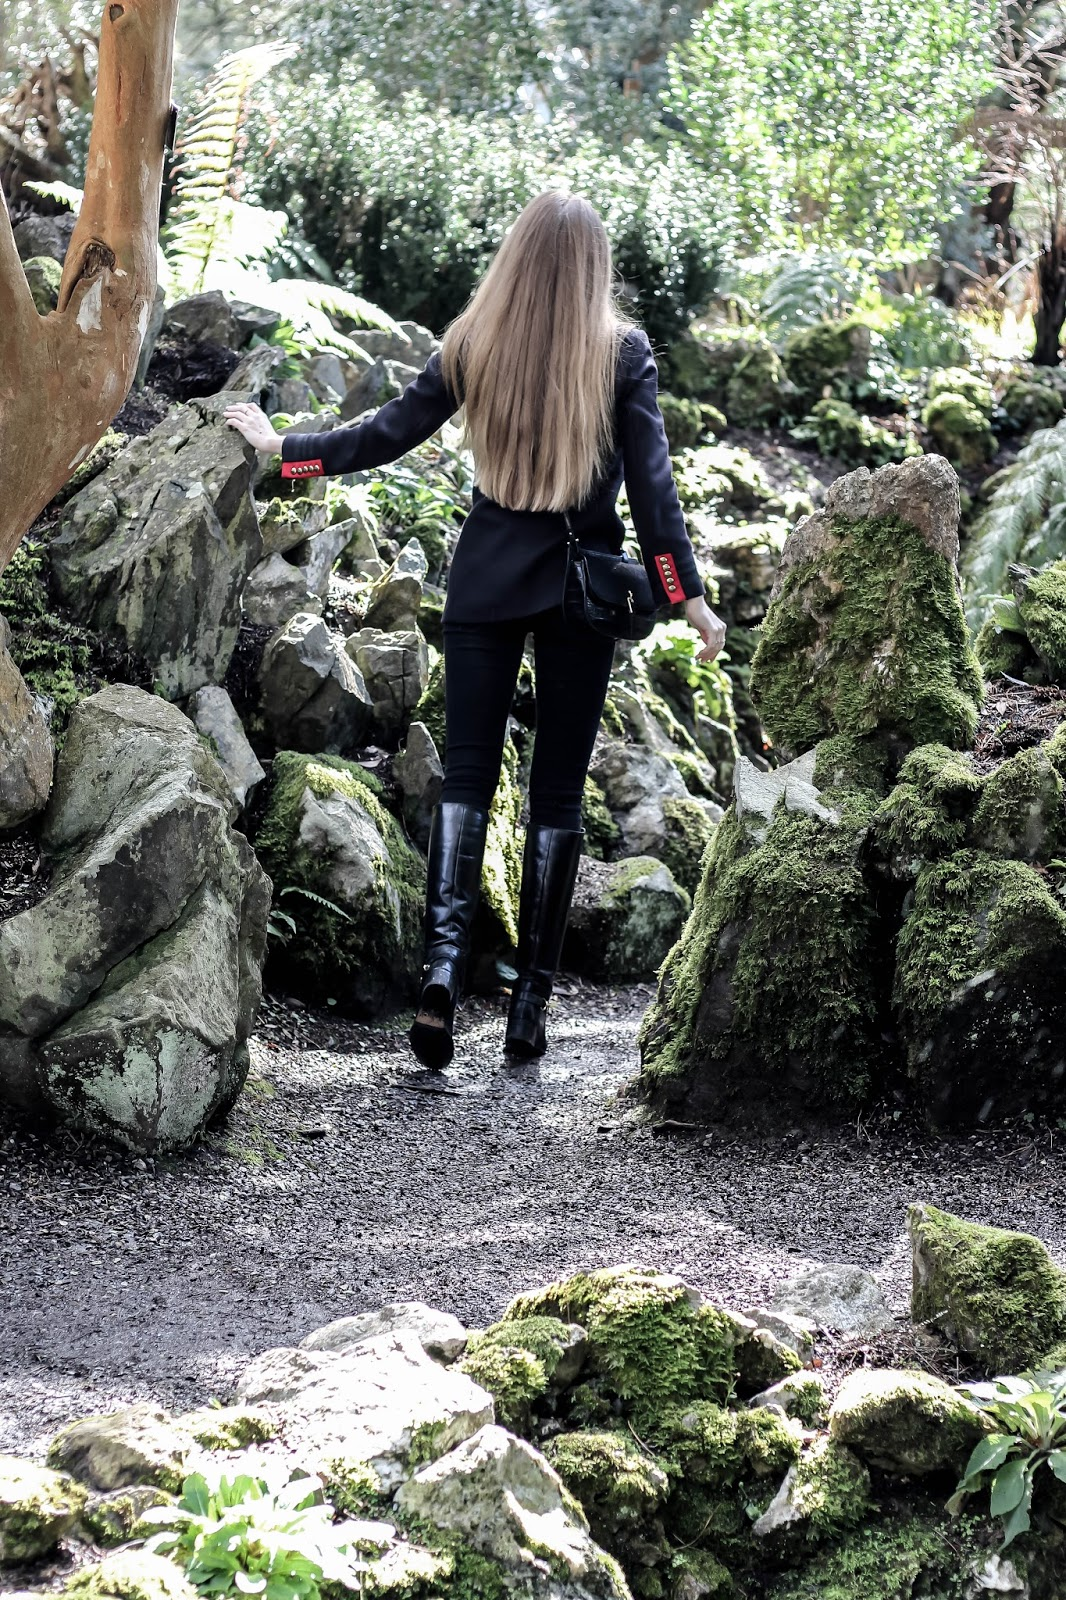 Mystical Scene Girl Exploring Woodland